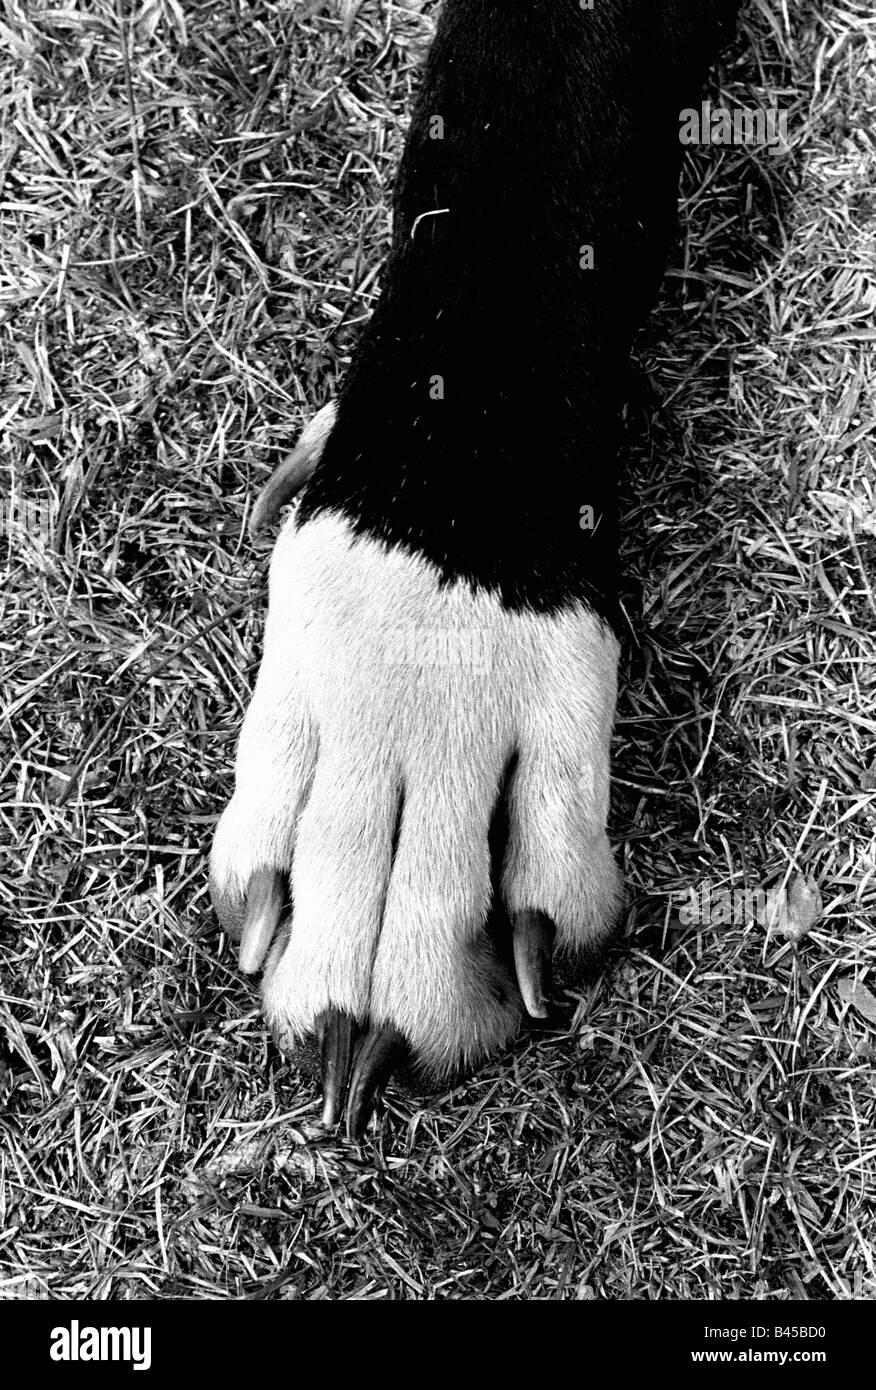 The paw of a great dane in the grass. - Stock Image